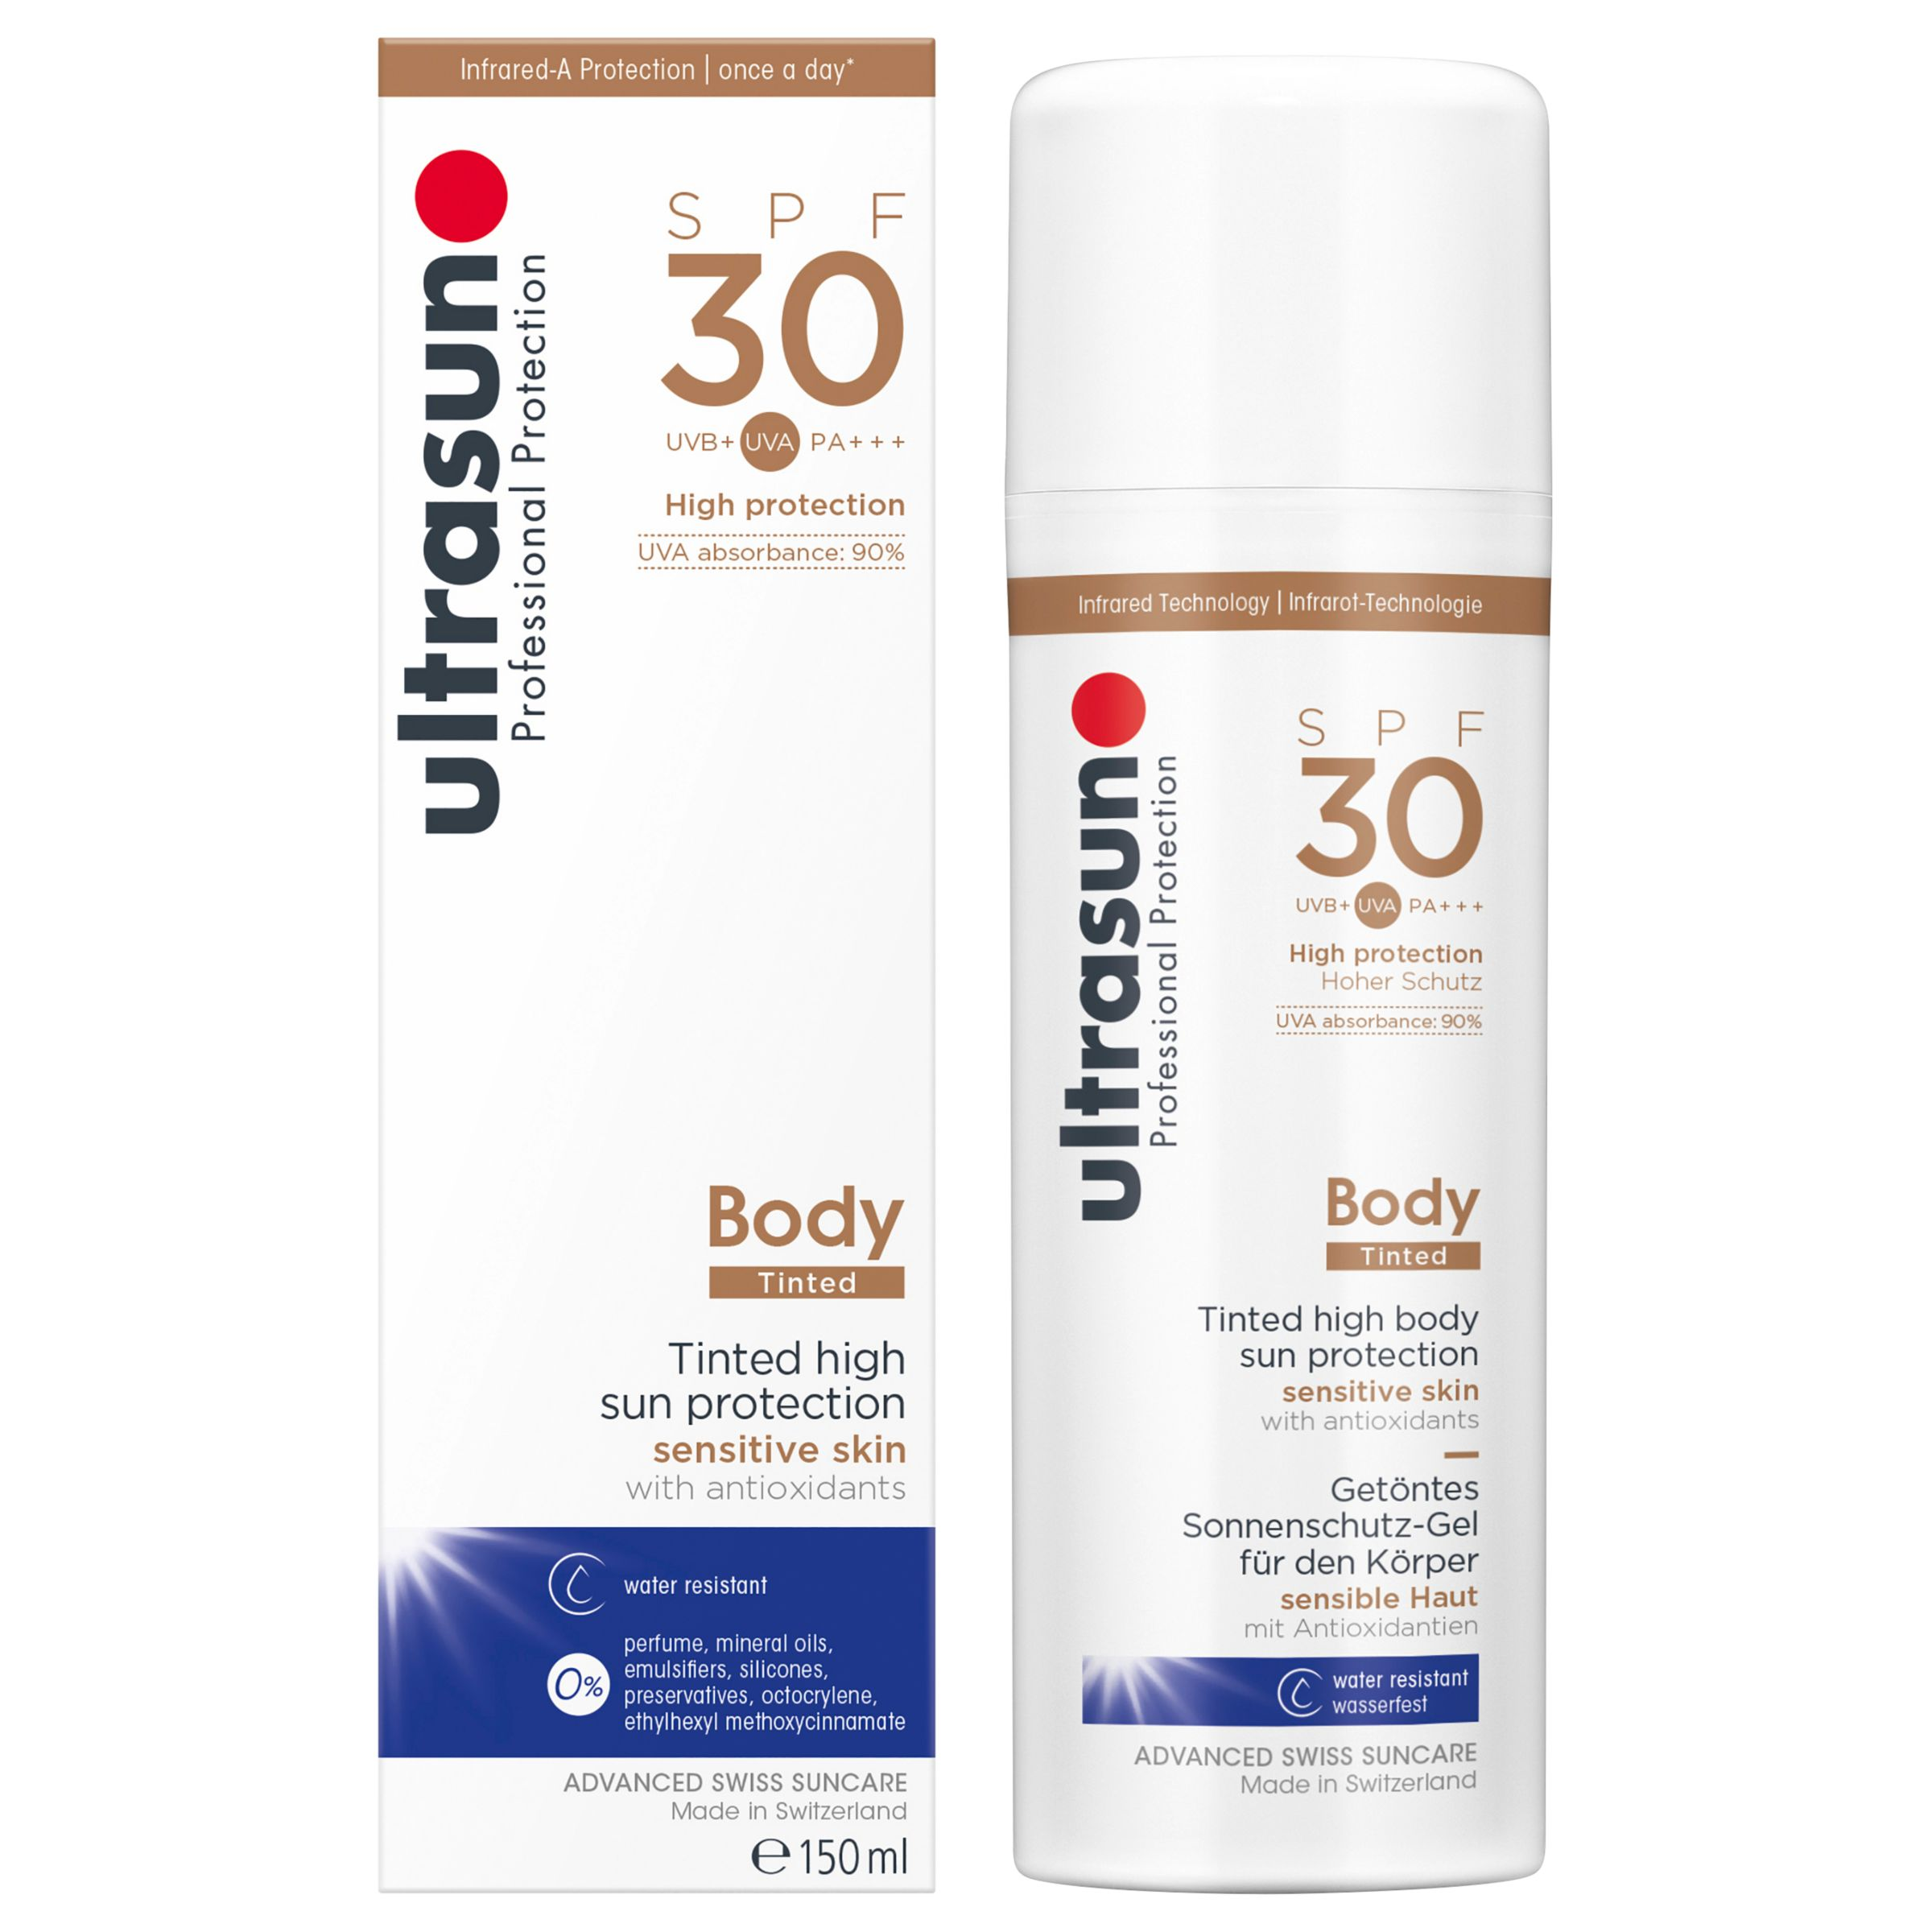 Ultrasun Ultrasun SPF 30 Tinted Body Sun Cream, 150ml